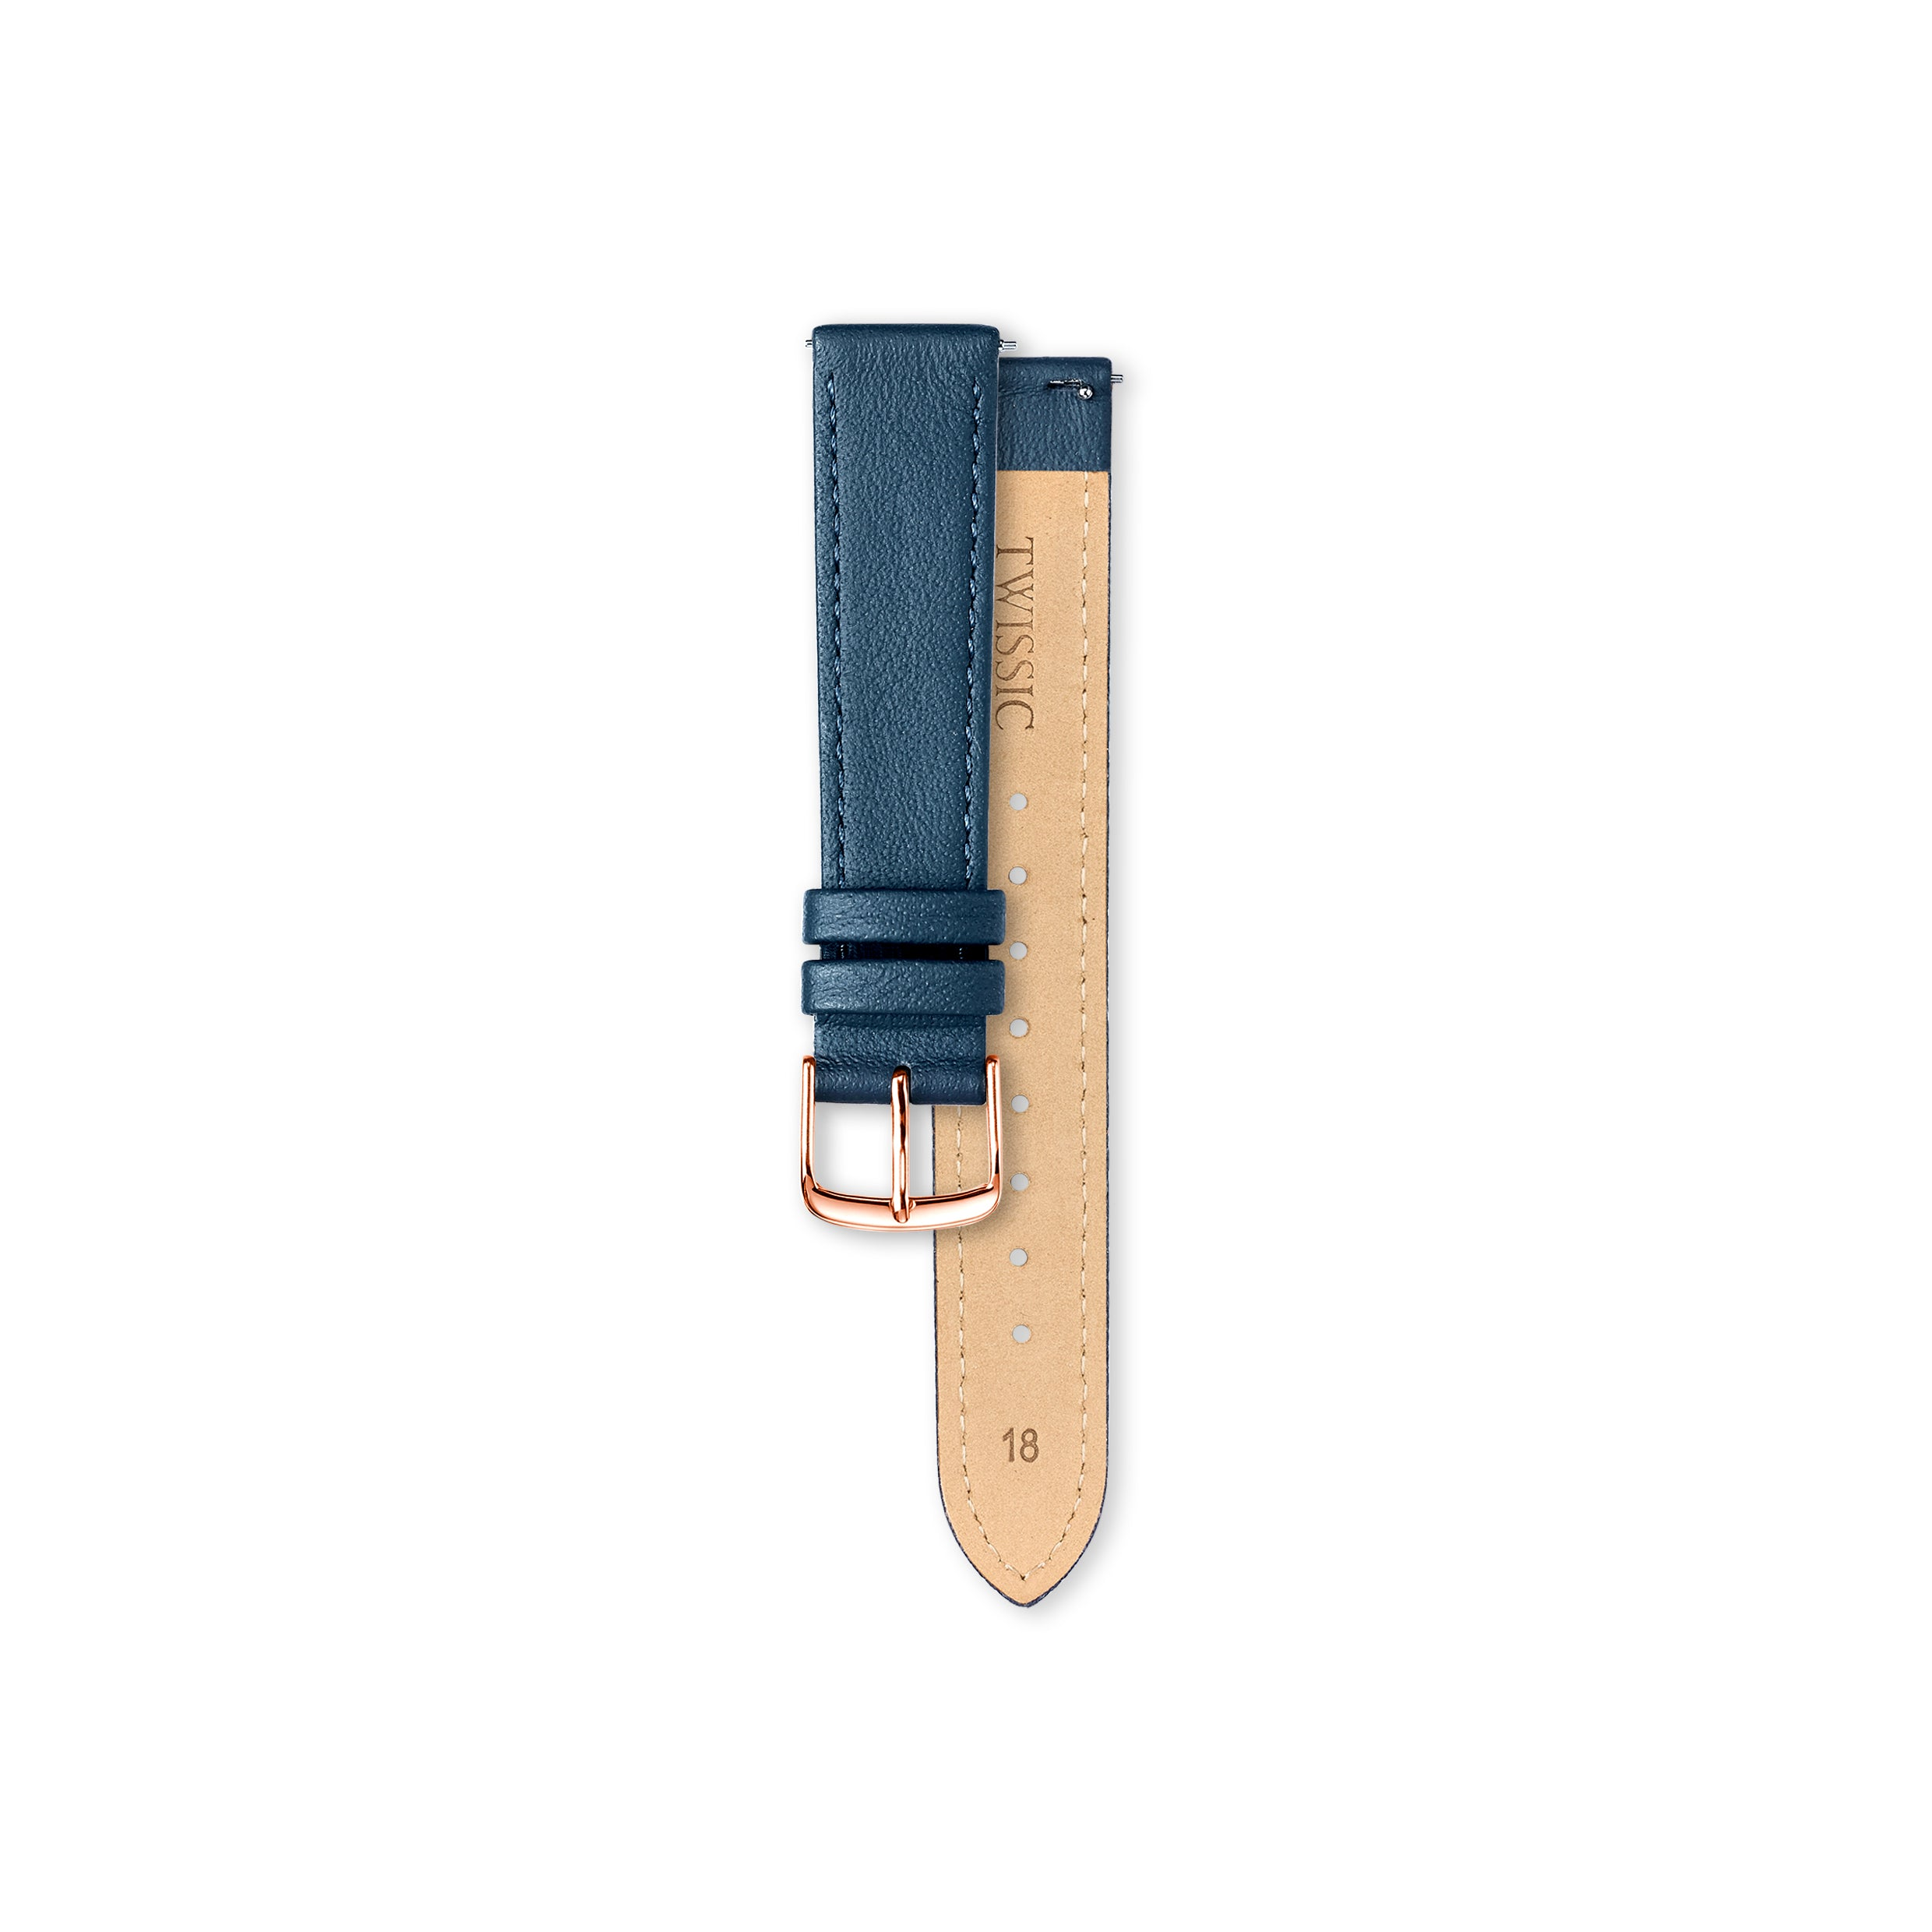 Christmas gift set Large (38mm/18mm) - Brick Red & Navy Straps